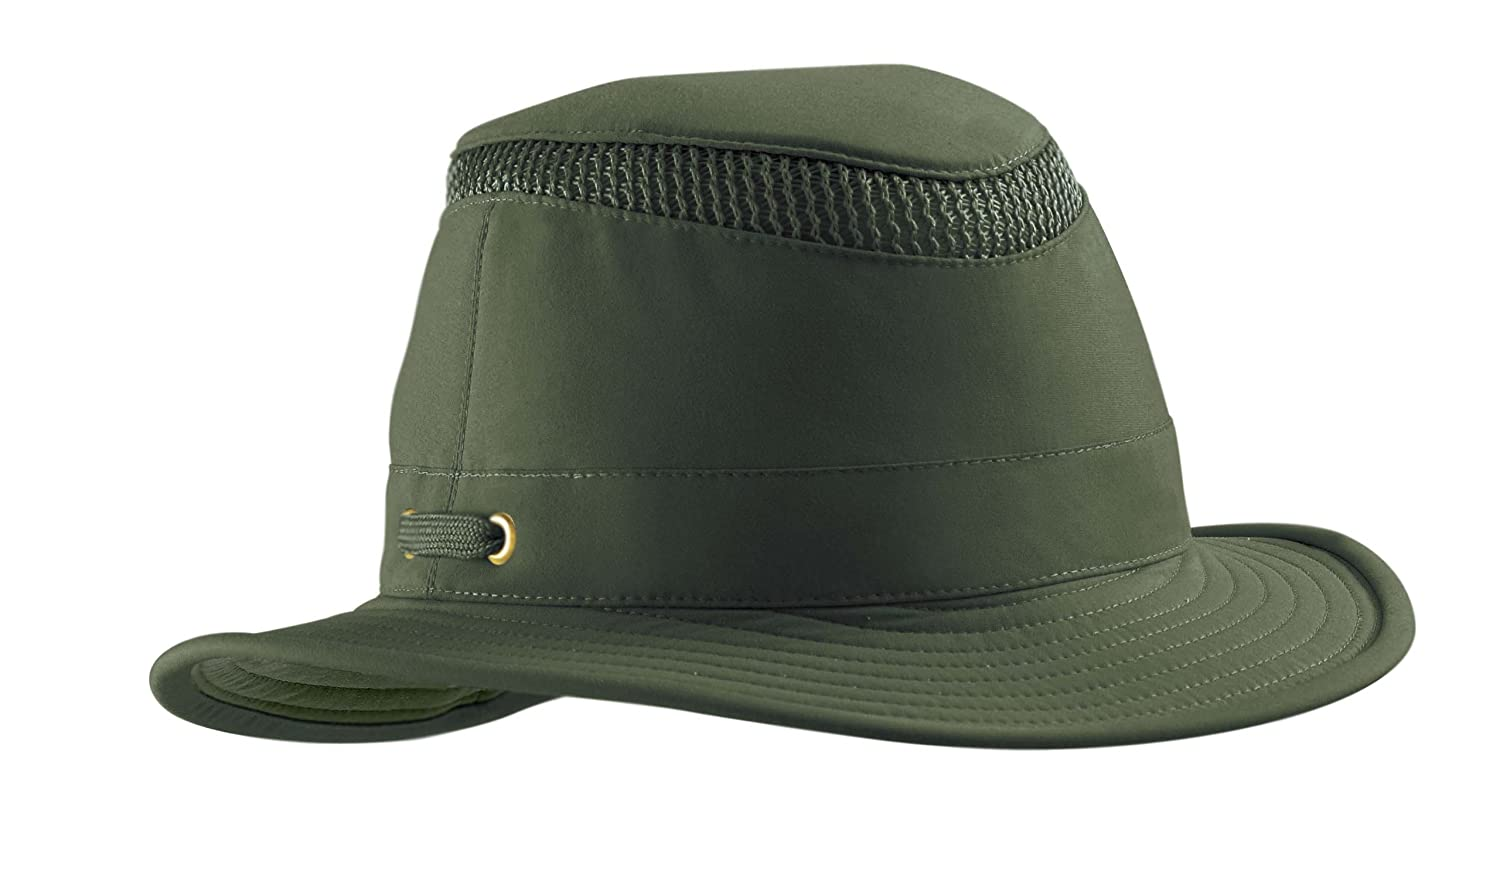 16925c6c8e8 Amazon.com  Tilley Endurables LTM5 Airflo Unisex Hat  Home Improvement